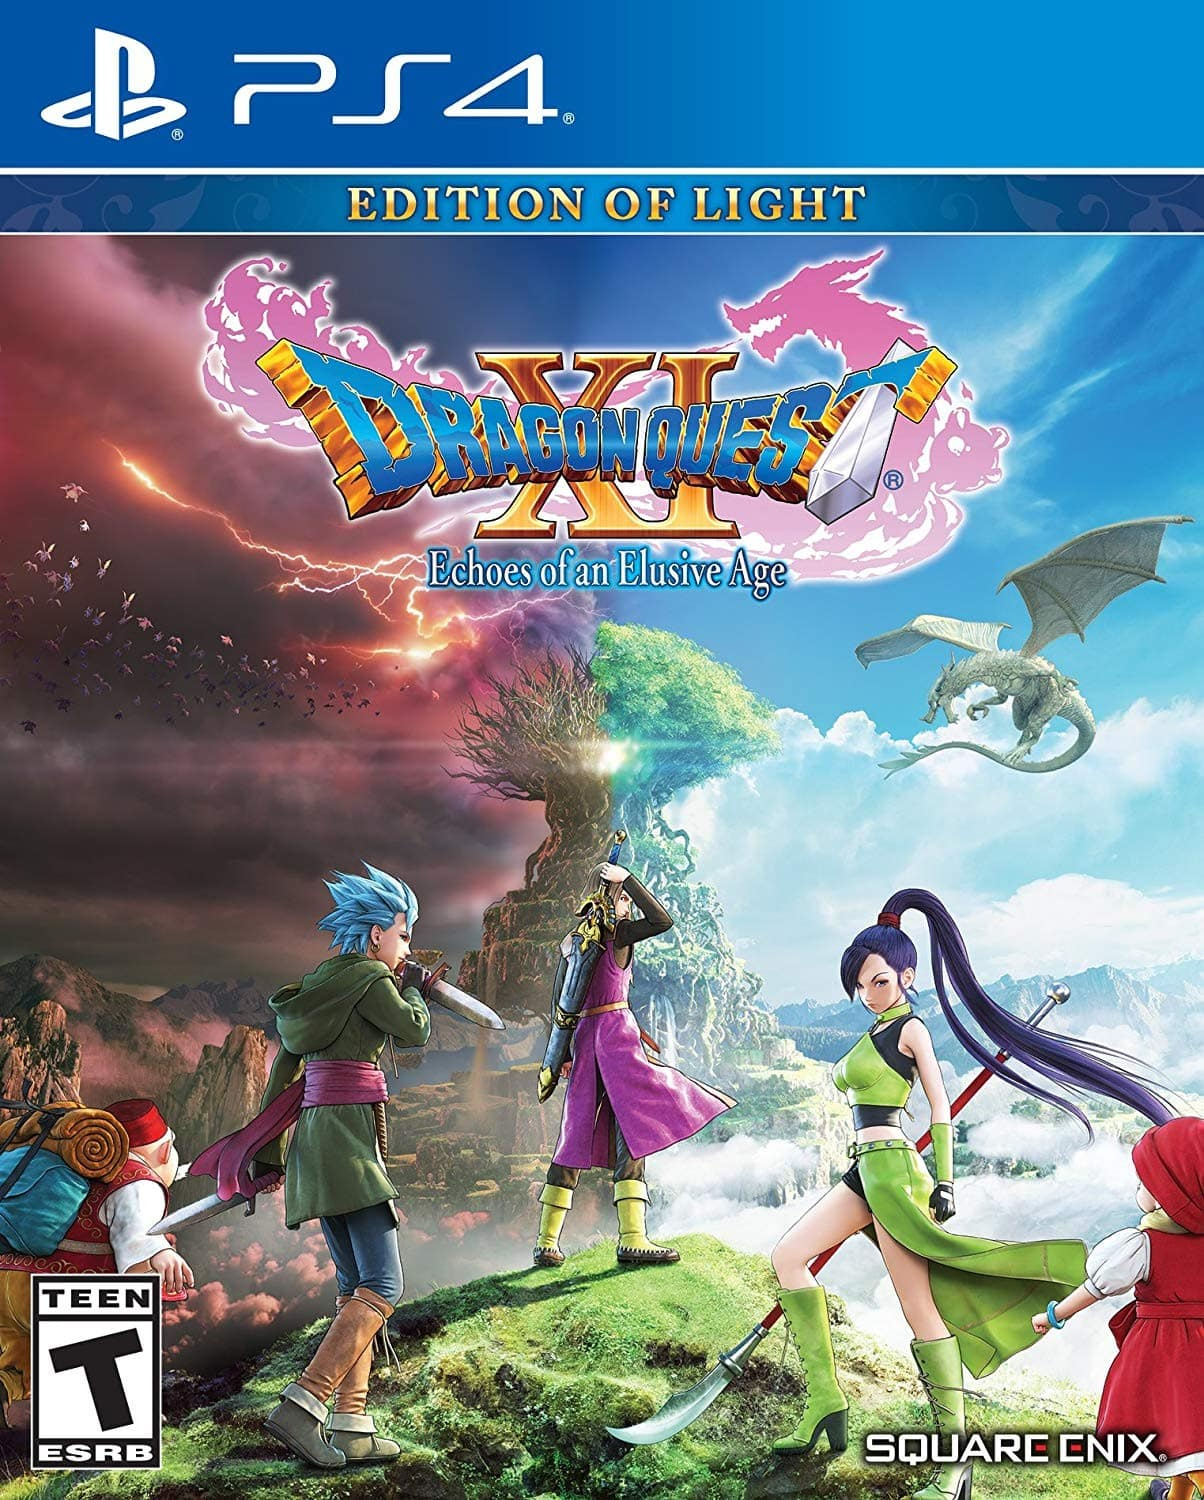 Dragon Quest 11 (PS4) - 39.60 + tax + free shipping